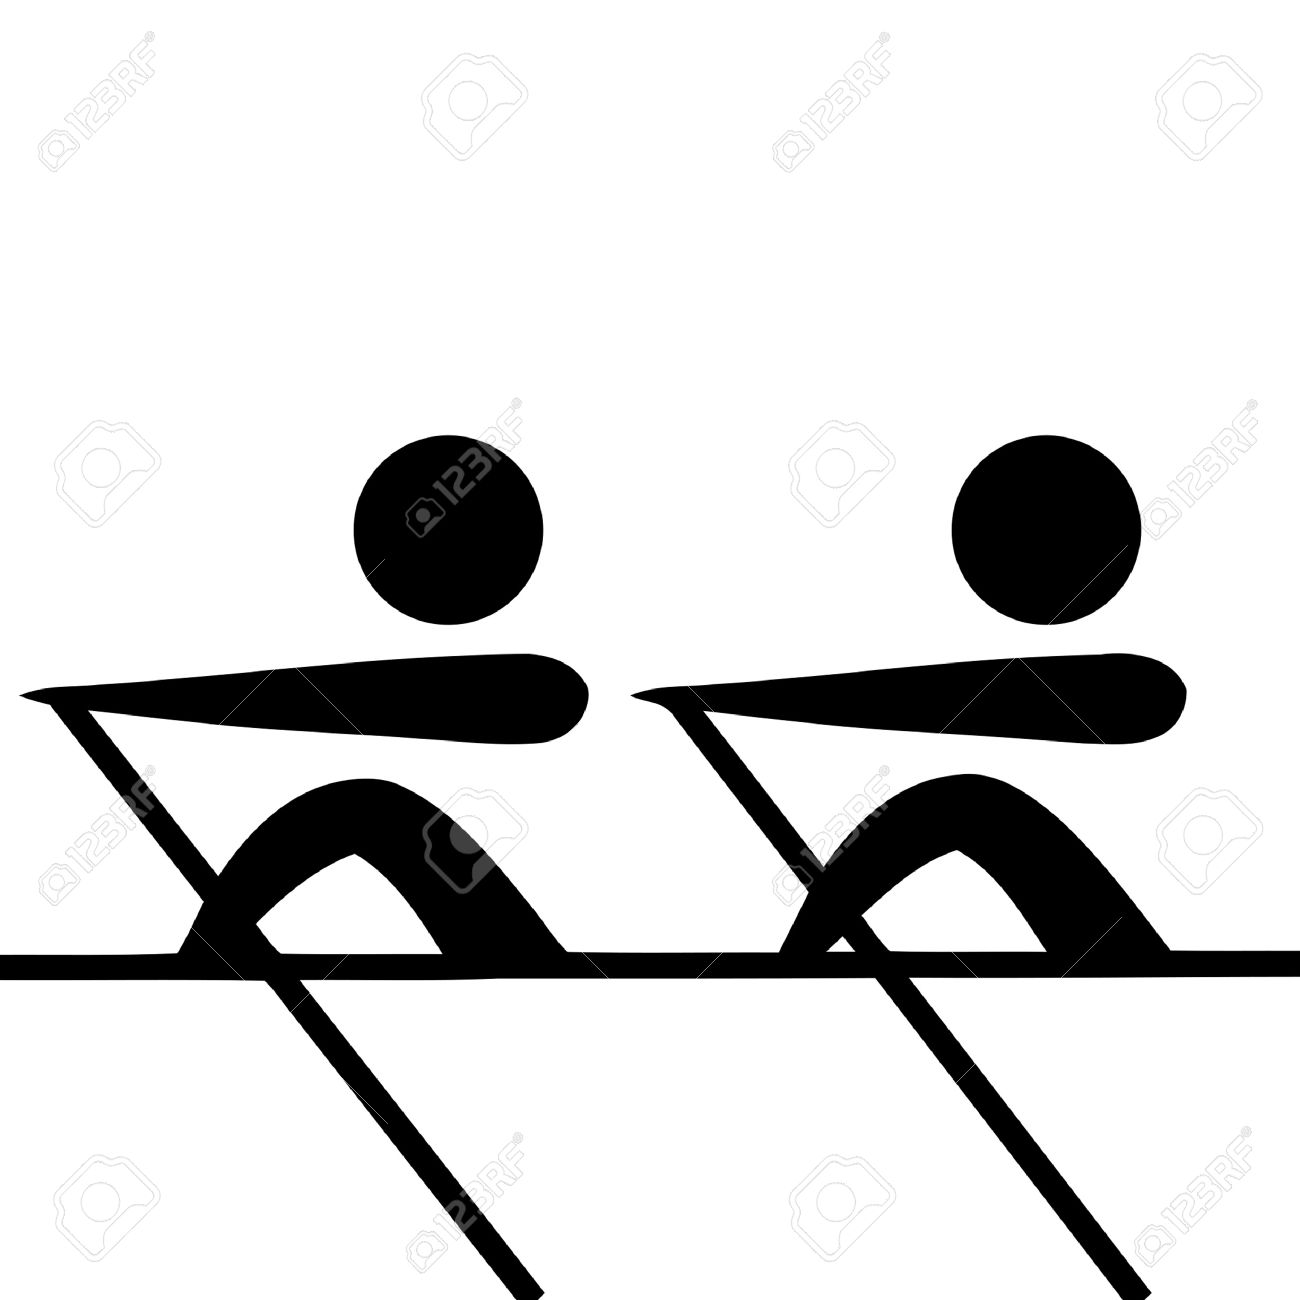 Black silhouetted rowing pairs sign or symbol; isolated on white background. - 9072047